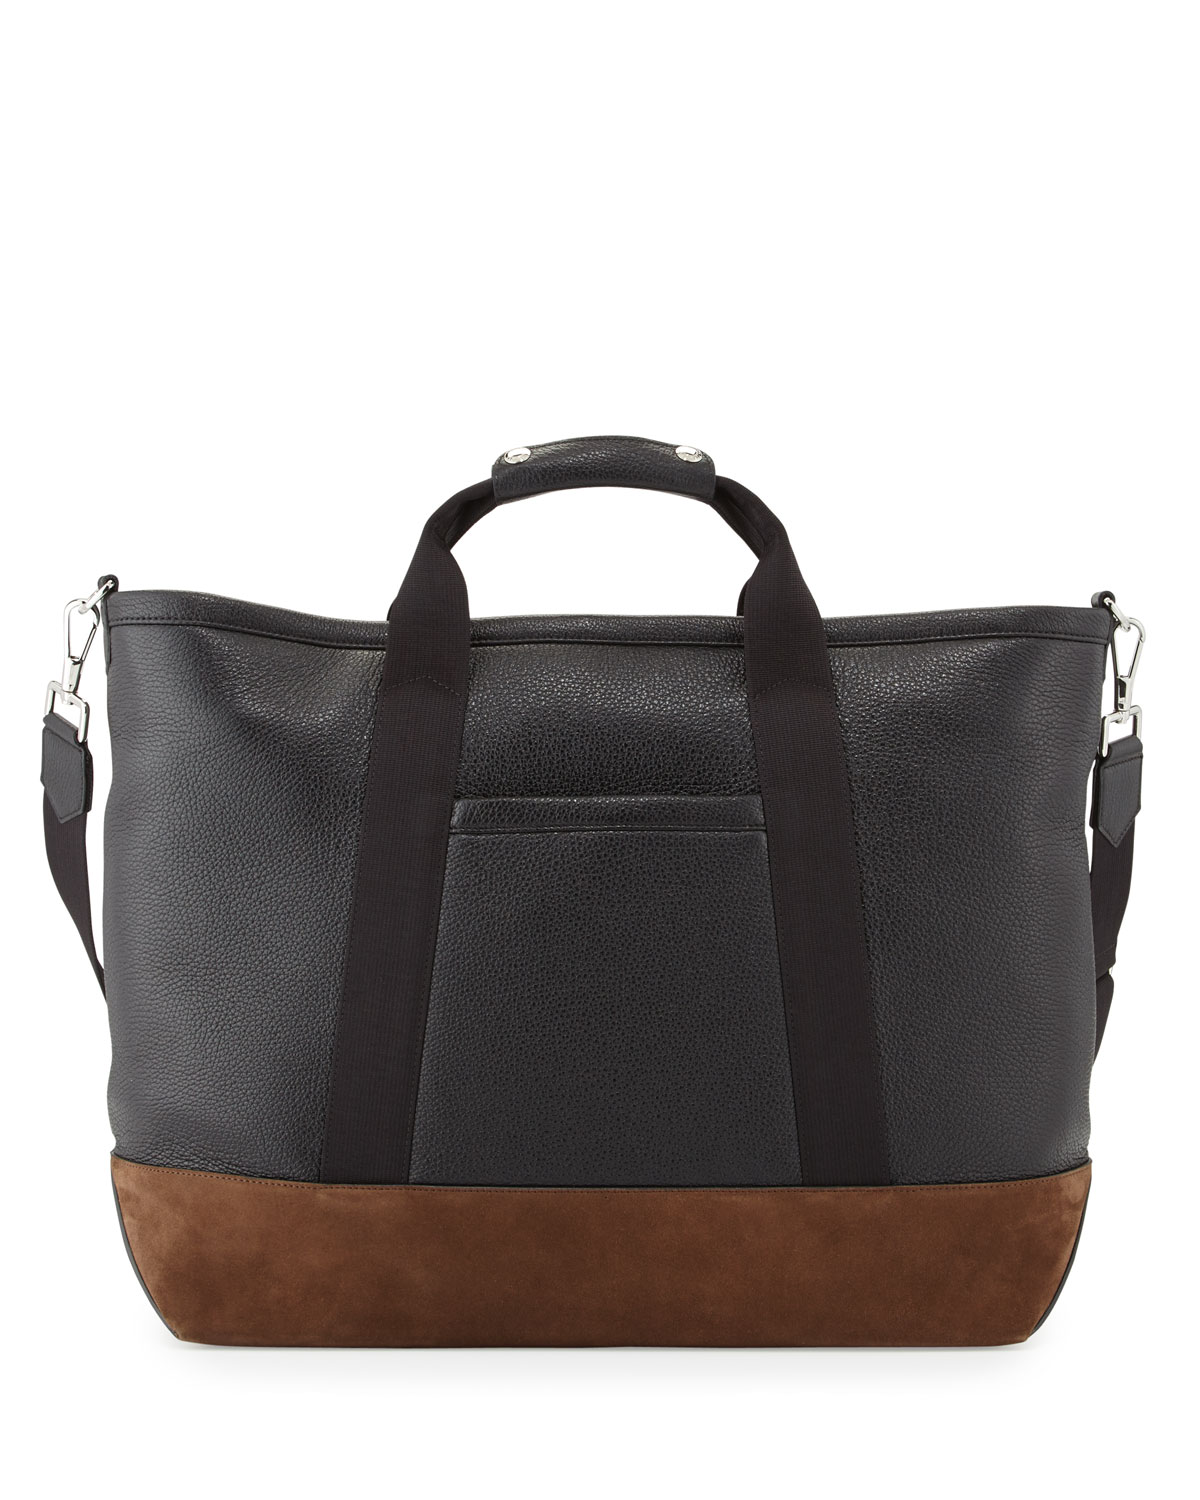 efc40ddb78c8 TOM FORD Men s Two-Tone Leather Weekender Bag